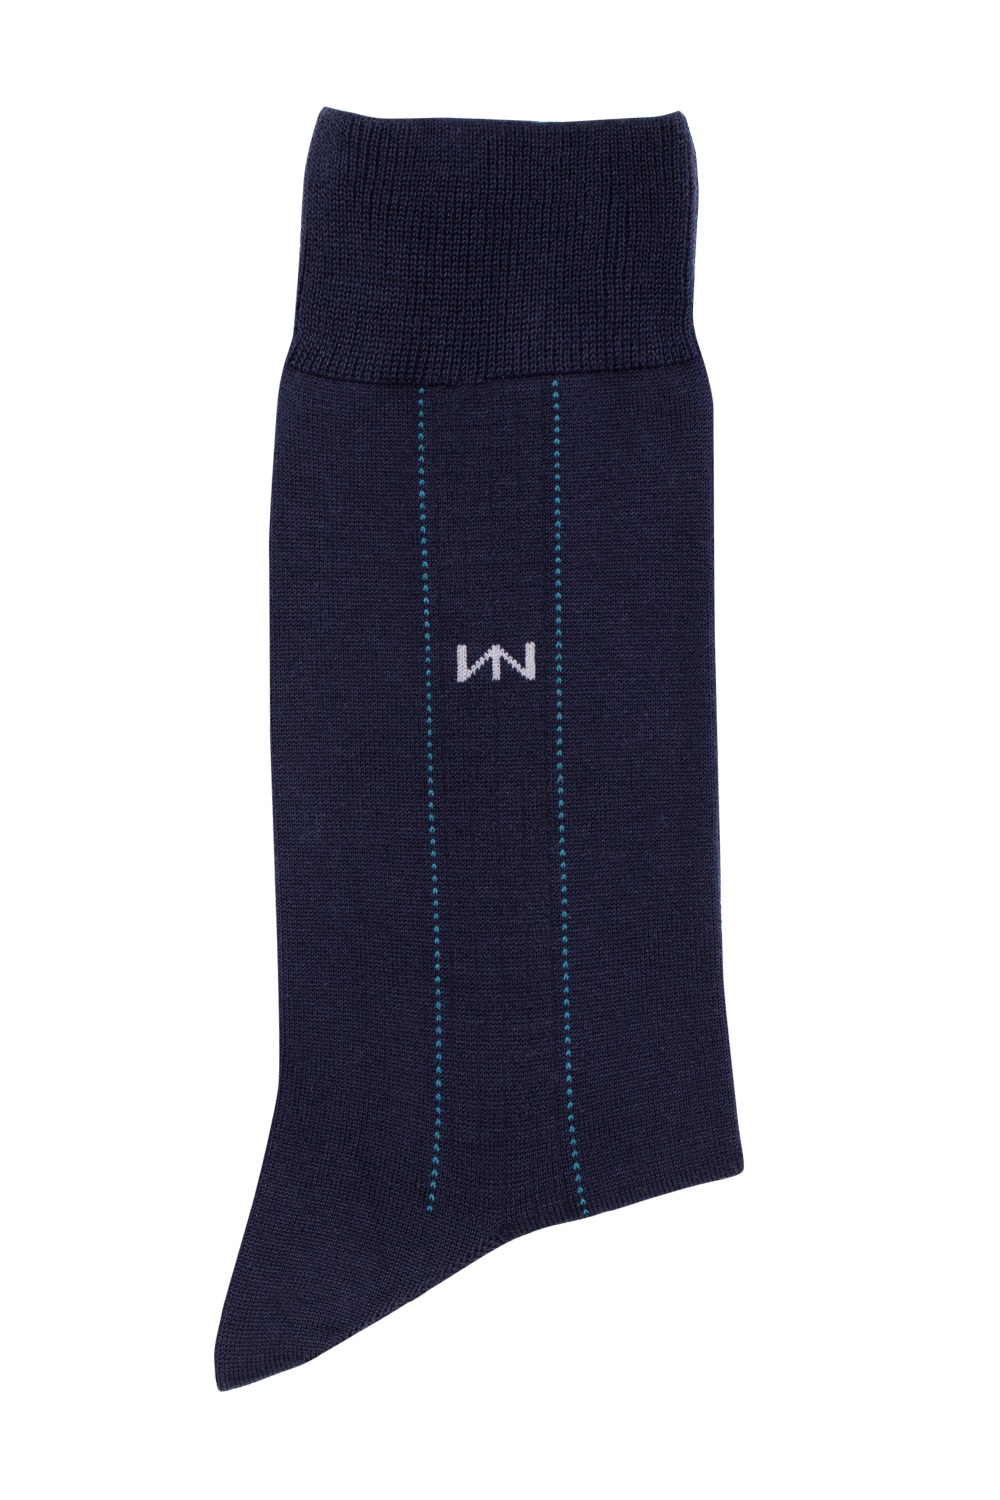 Egyptian Cotton Socks - Navy